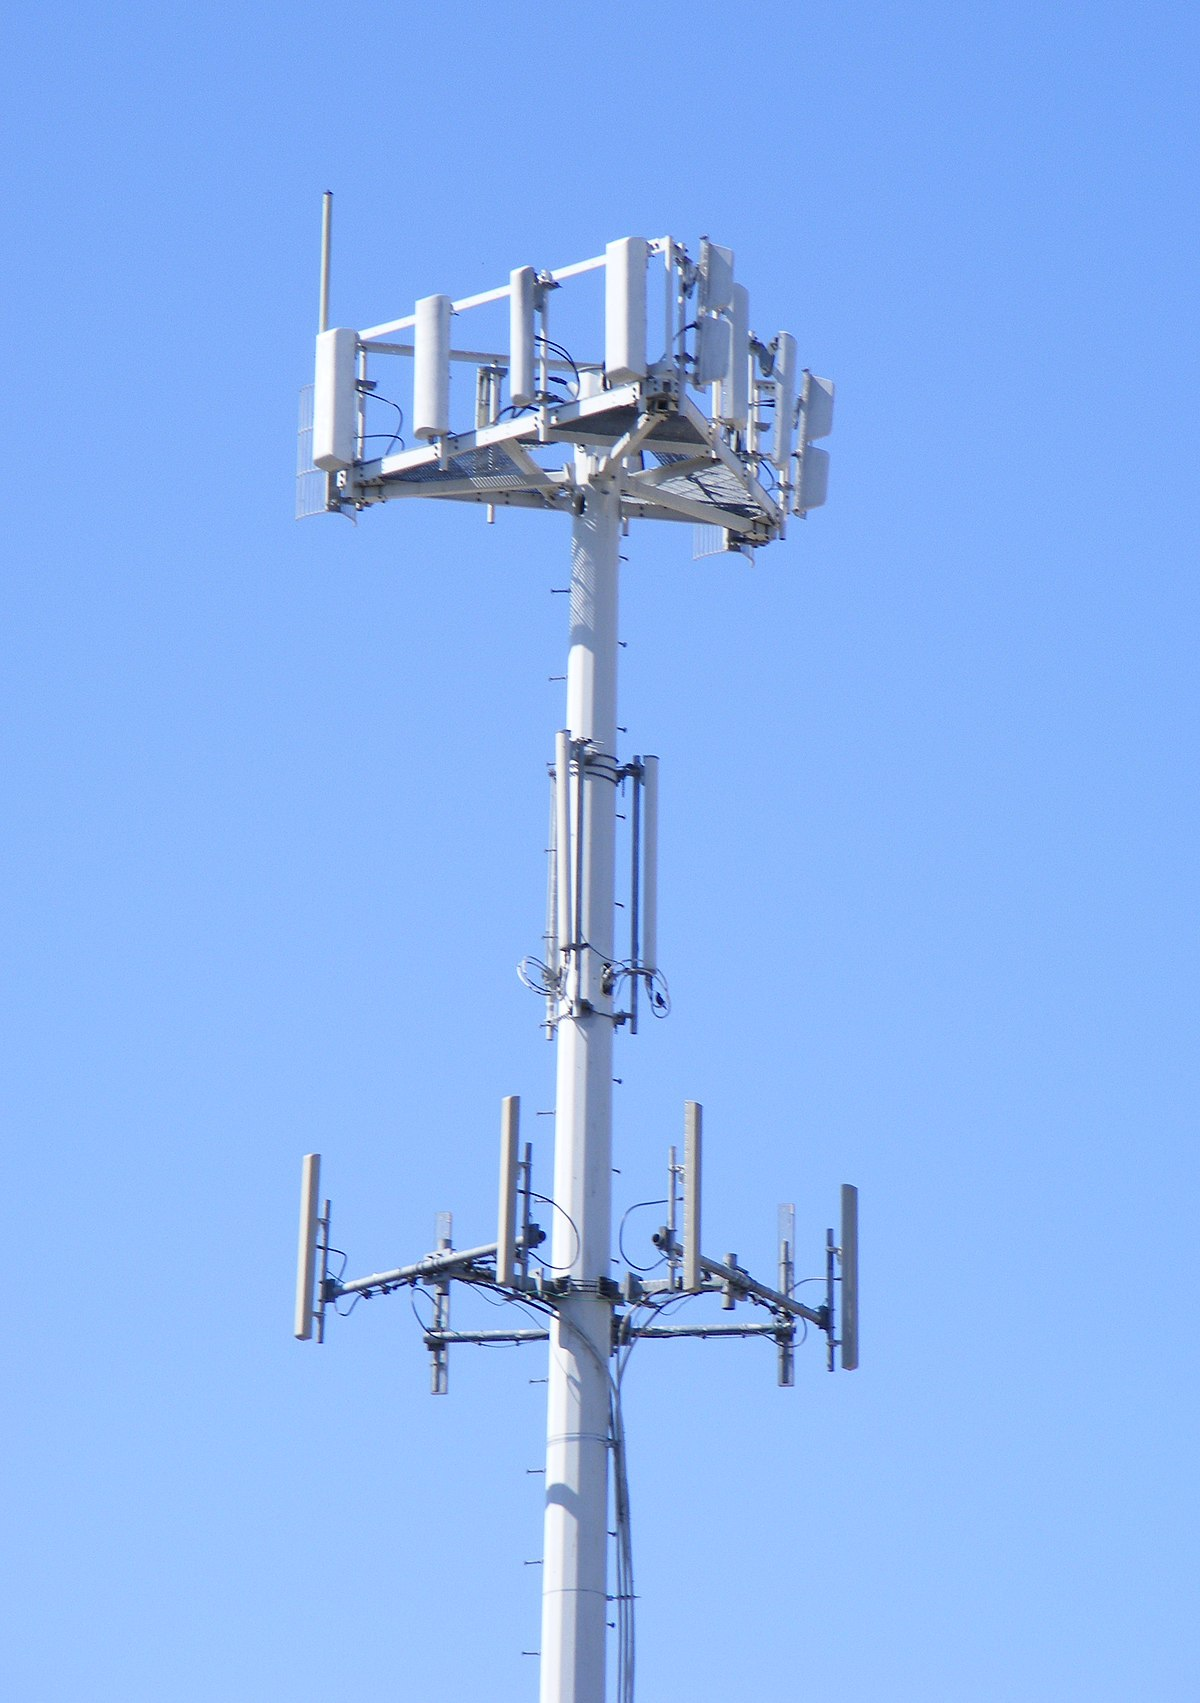 hight resolution of diagram of a cell site